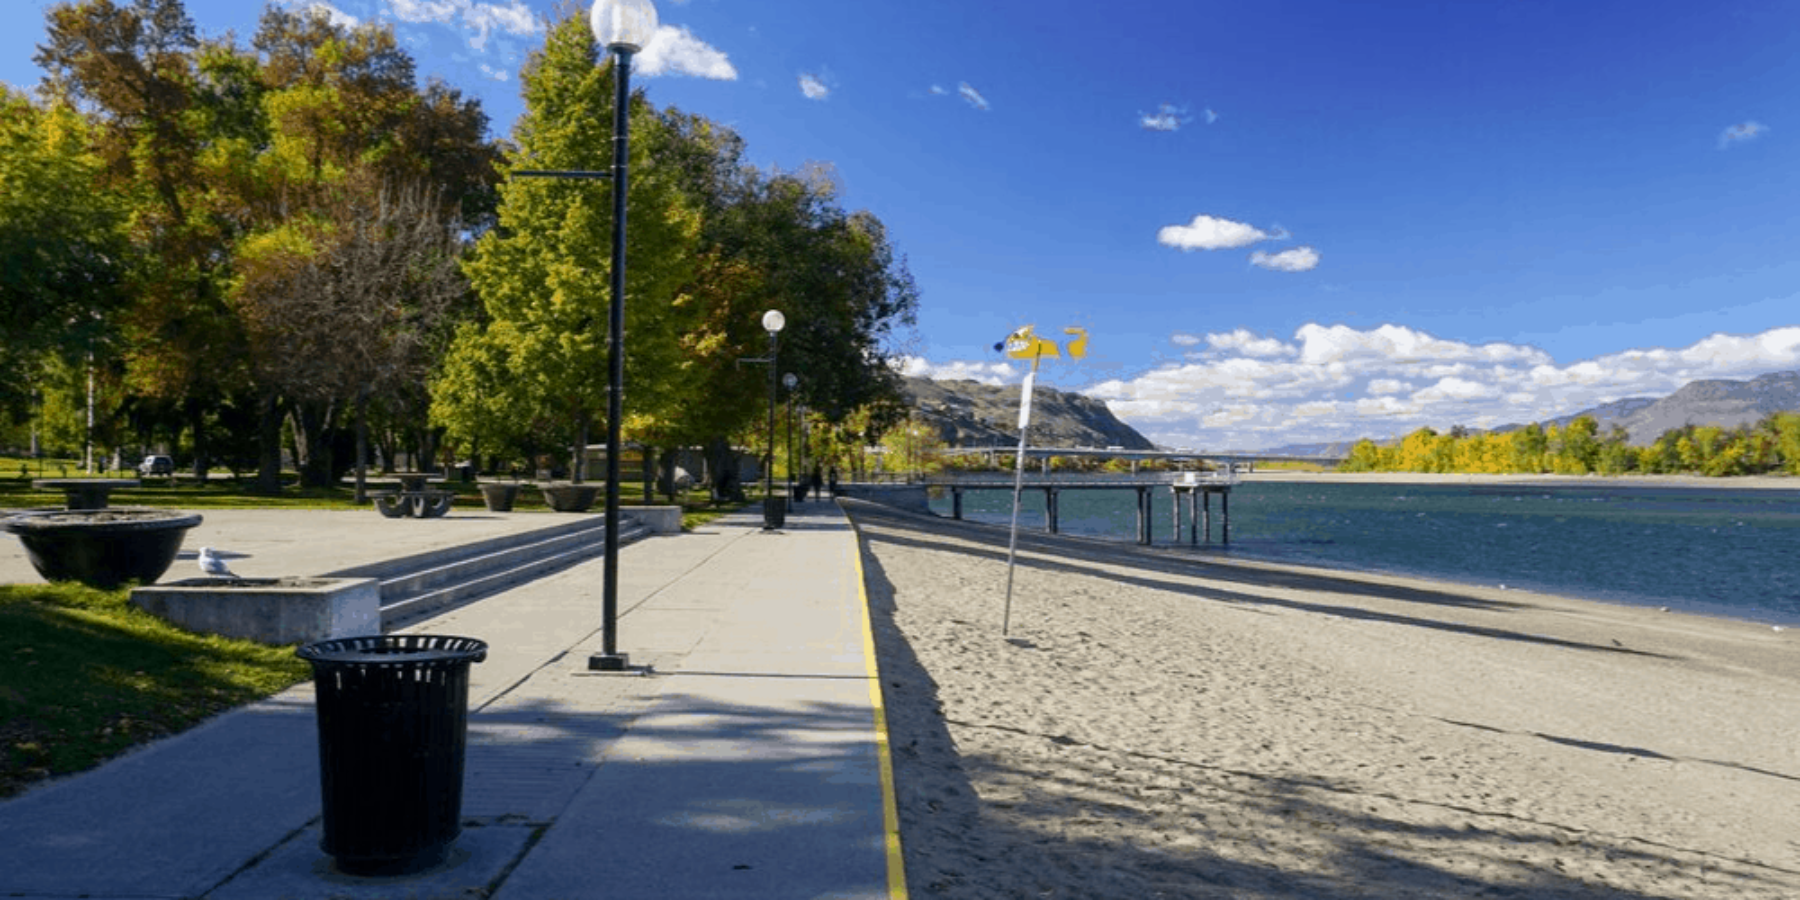 Riverside Park & Waterfront Park